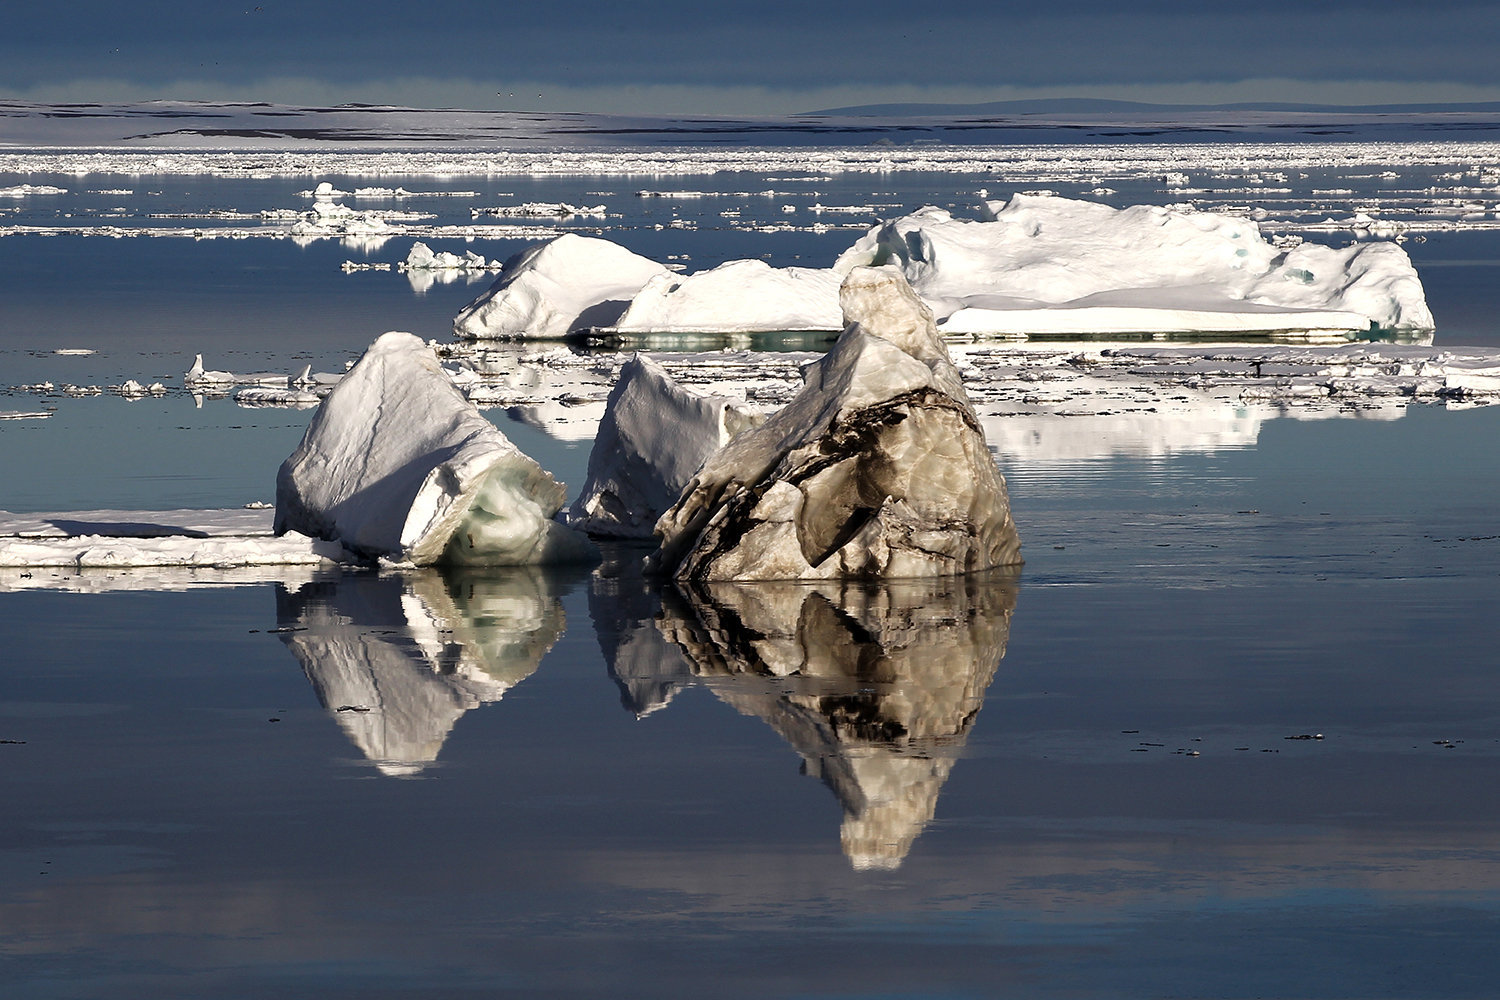 An iceberg in the waters of the Franz Josef Land Archipelago